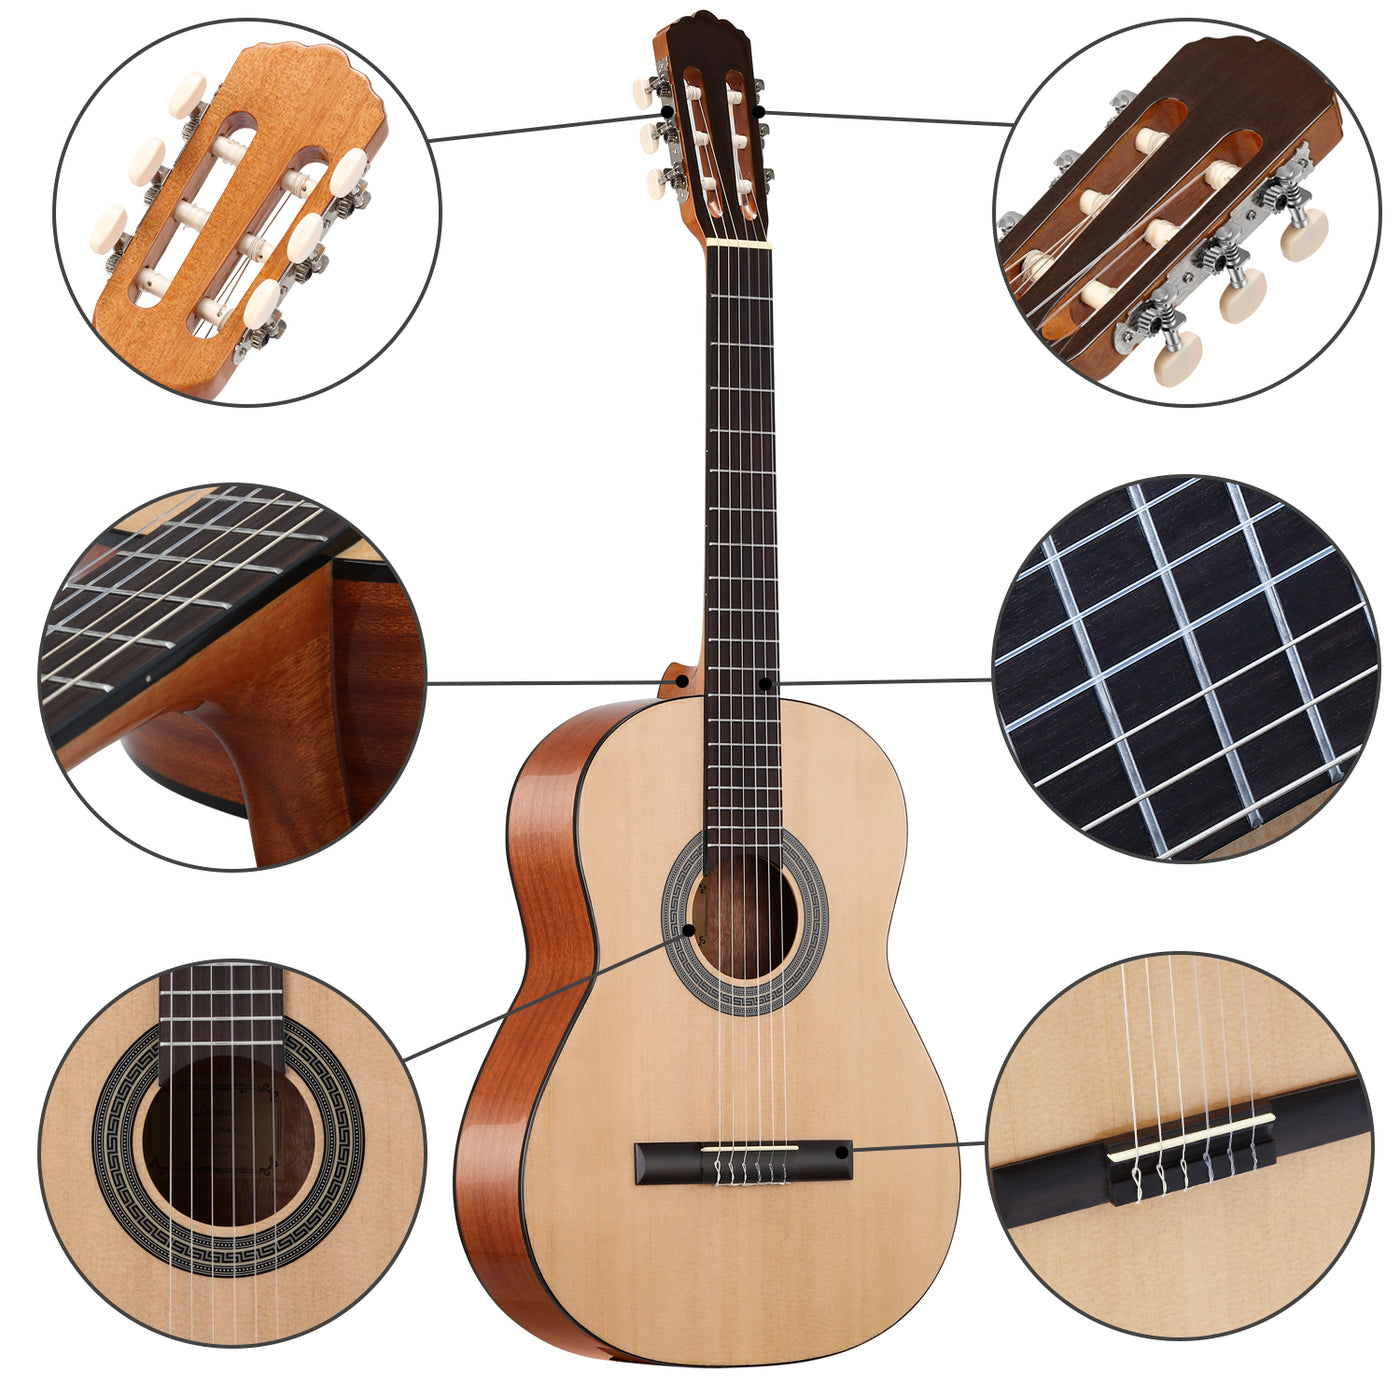 donner 39 inch classical guitar spruce mahogany body dcg 1 full size b donnerdeal. Black Bedroom Furniture Sets. Home Design Ideas